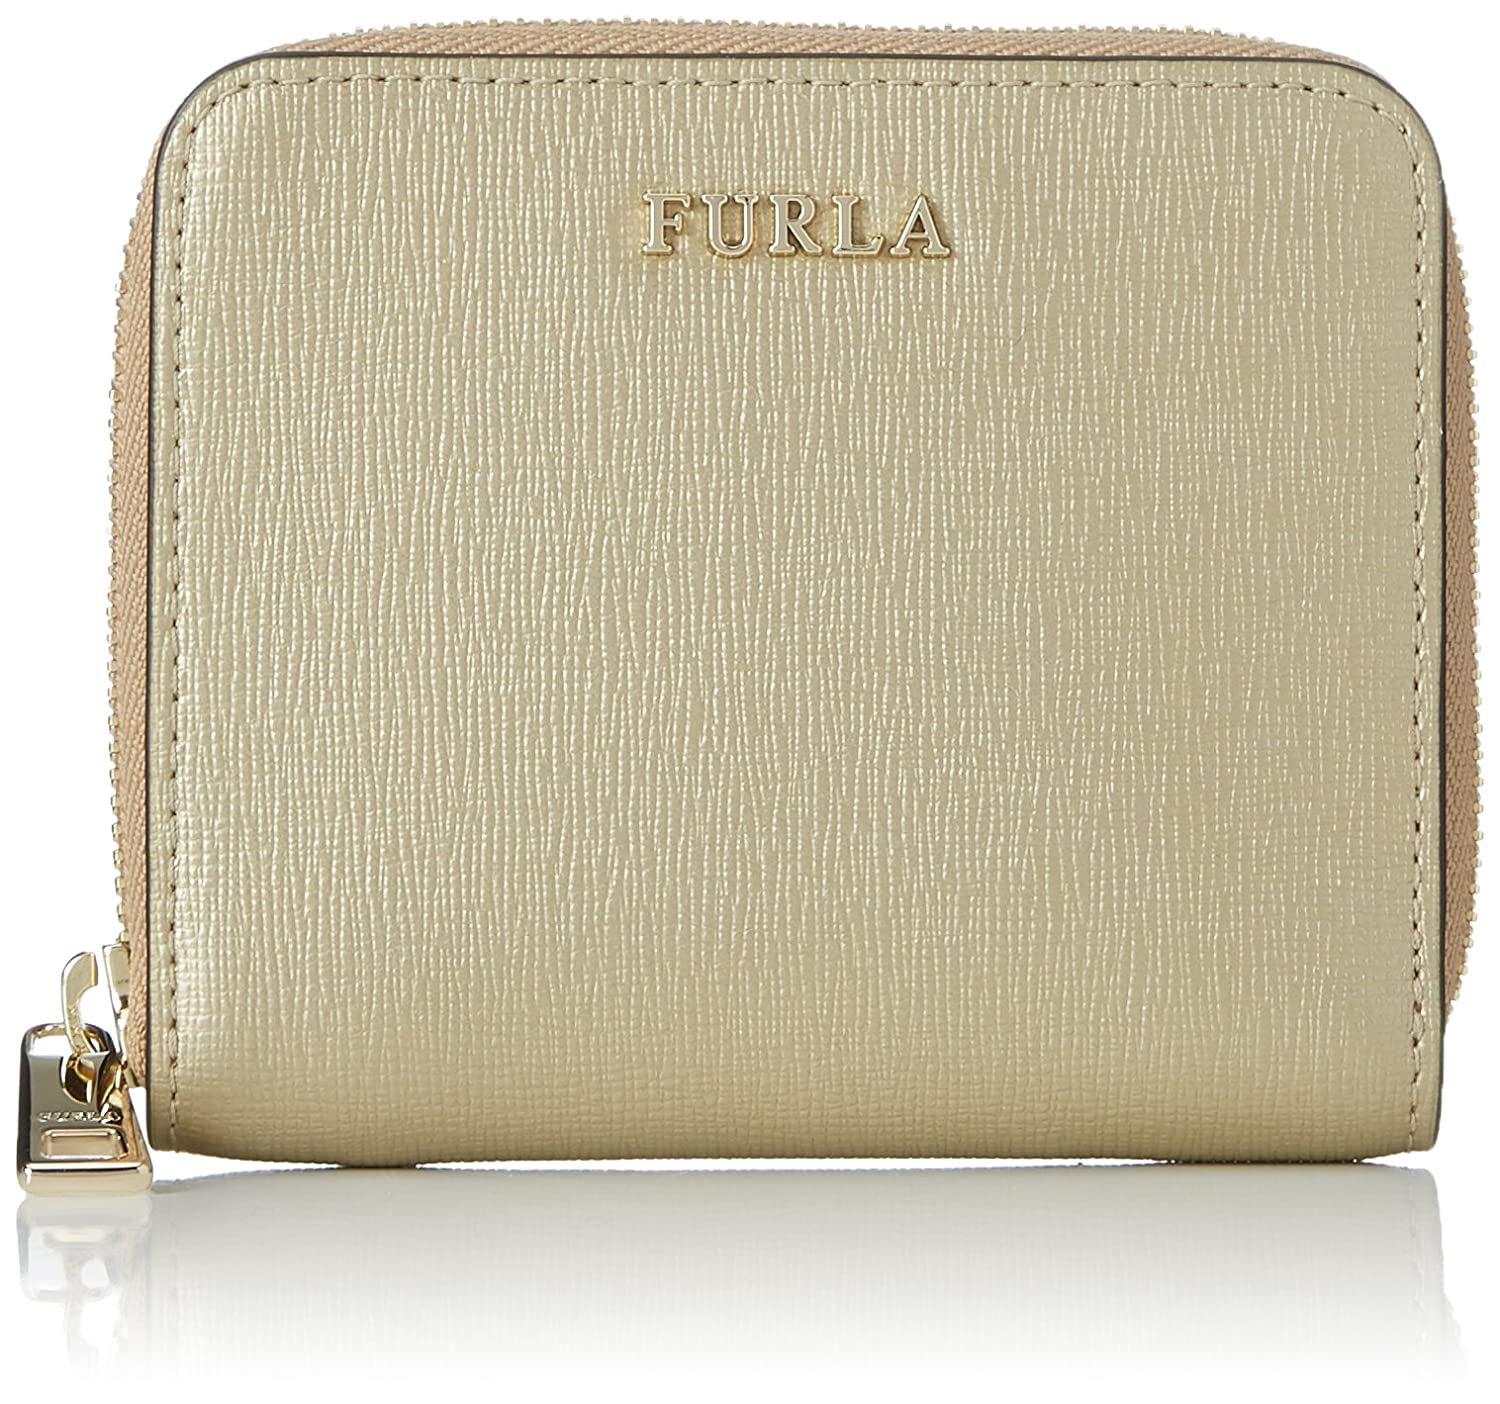 Furla - Babylon S Zip Around, Carteras Mujer, Dorado (Color Gold), 2x9x11 cm (B x H T): Amazon.es: Zapatos y complementos